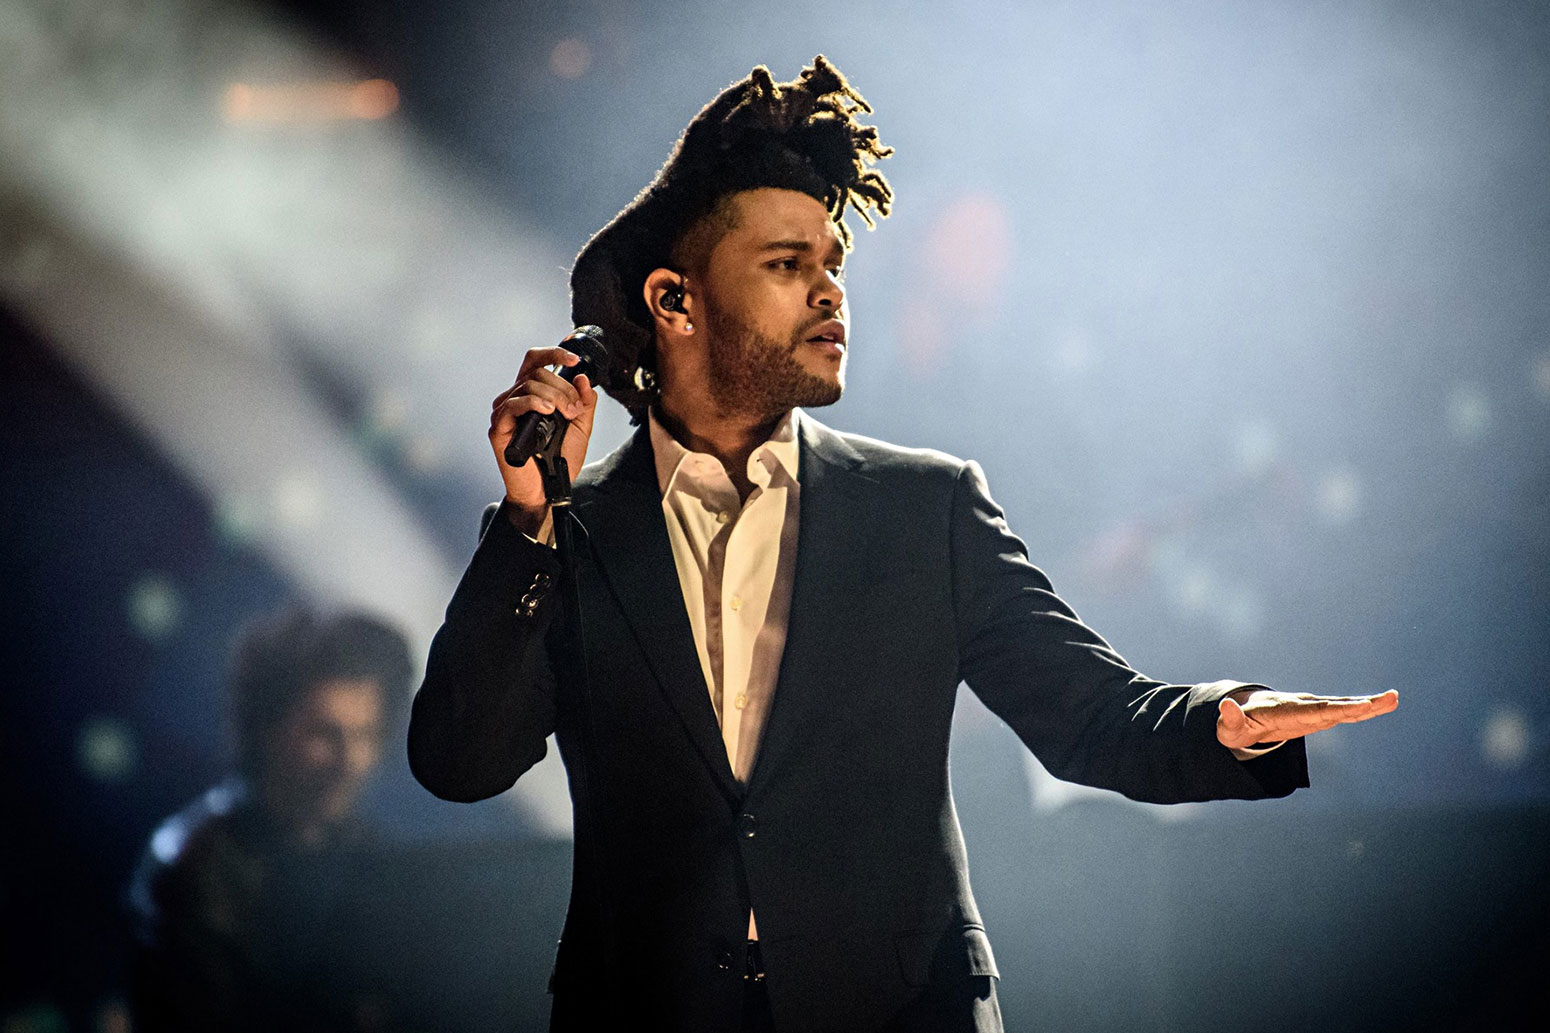 The weeknd concert dates